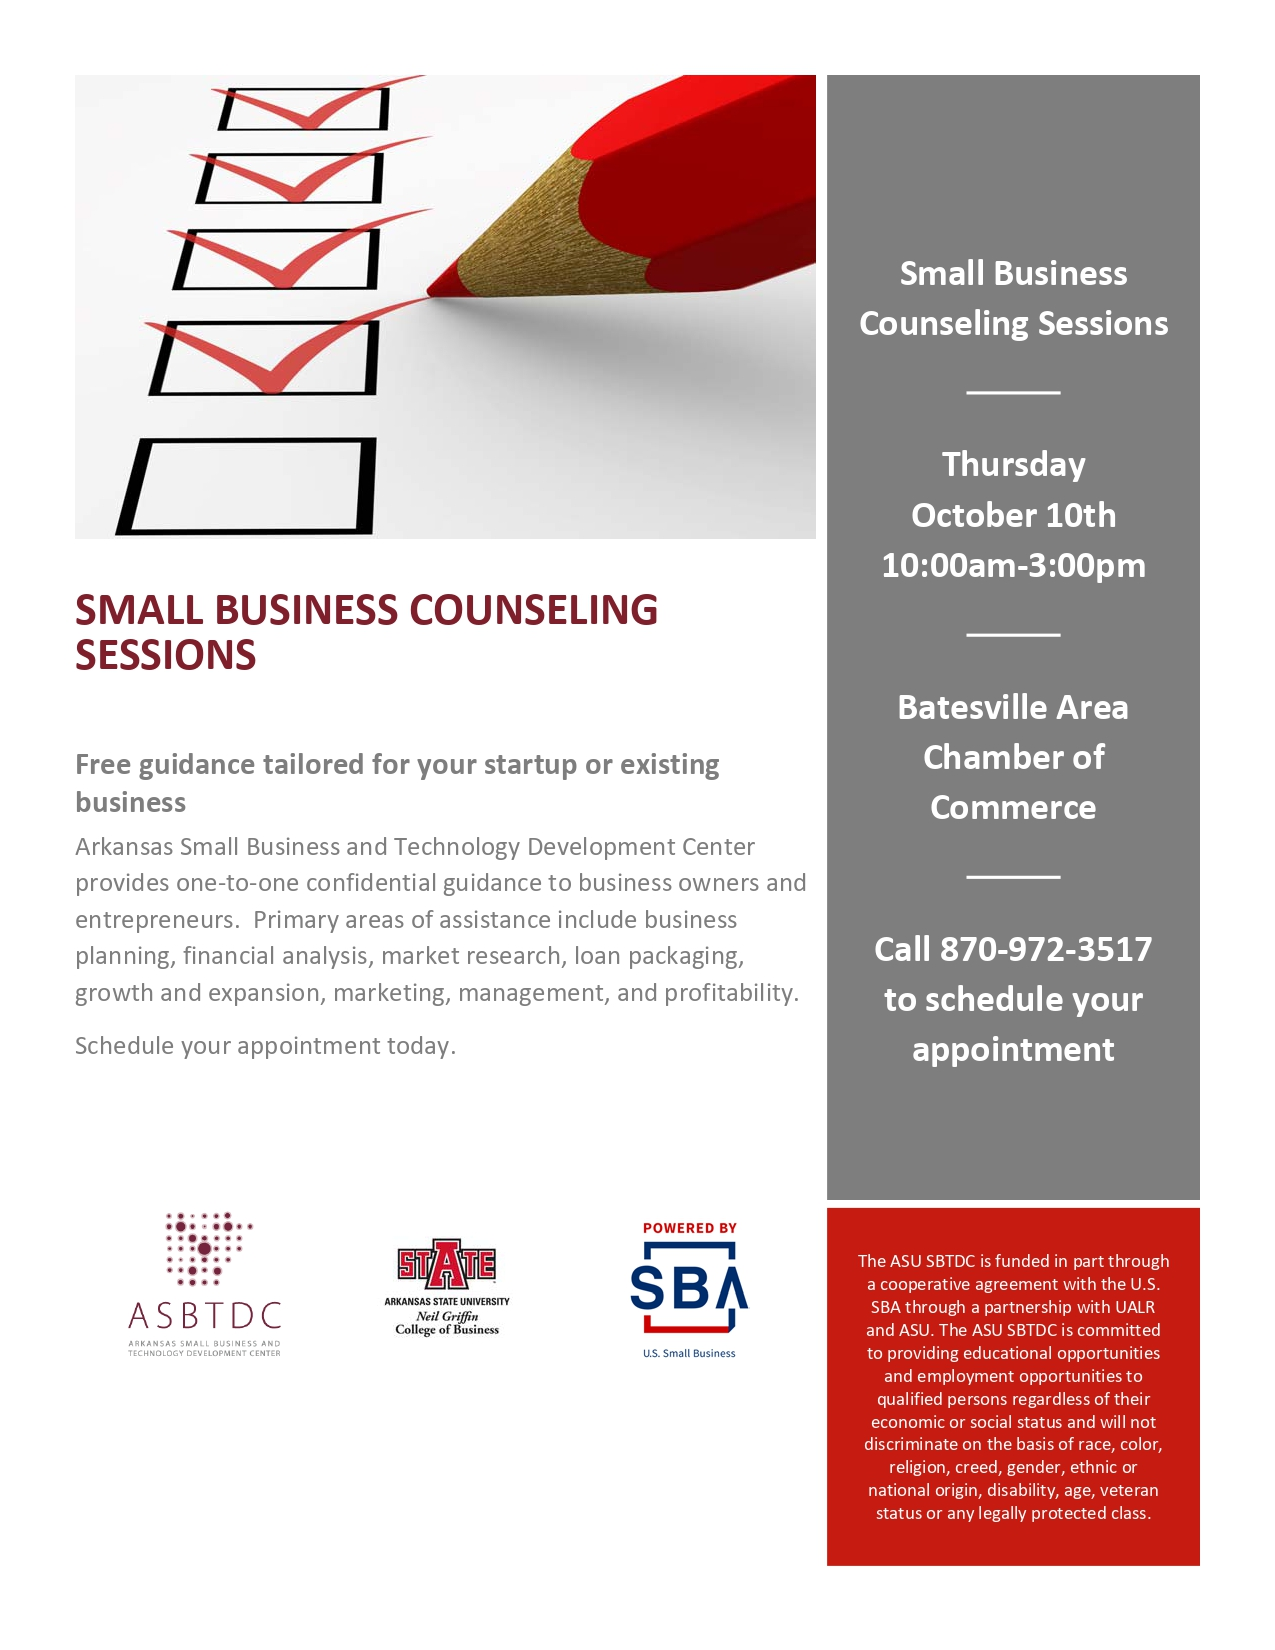 Small Business Consulting Session